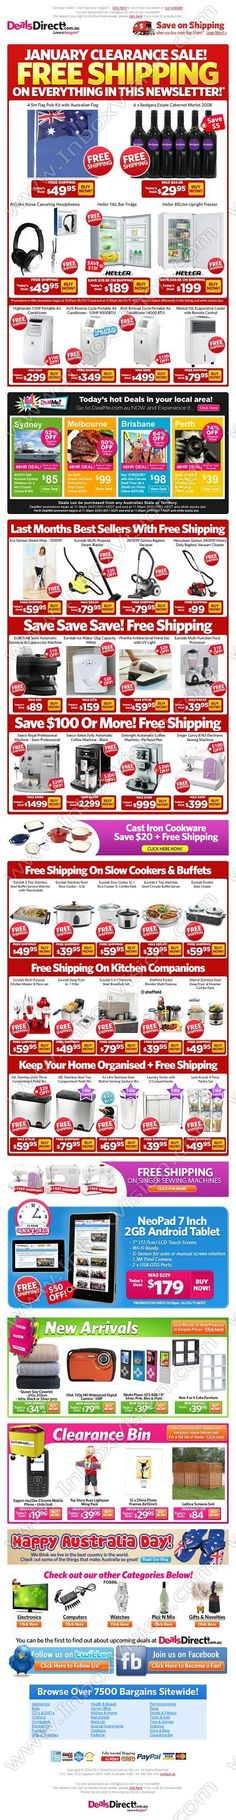 Company:  DealsDirect     Subject:  Happy Australia Day - Free Shipping on All Home Appliances in Newsletter!               INBOXVISION providing email design ideas and email marketing intelligence.     http://www.inboxvision.com/blog  #EmailMarketing #DigitalMarketing #EmailDesign #EmailTemplate #InboxVision #Emailideas #NewsletterIdeas